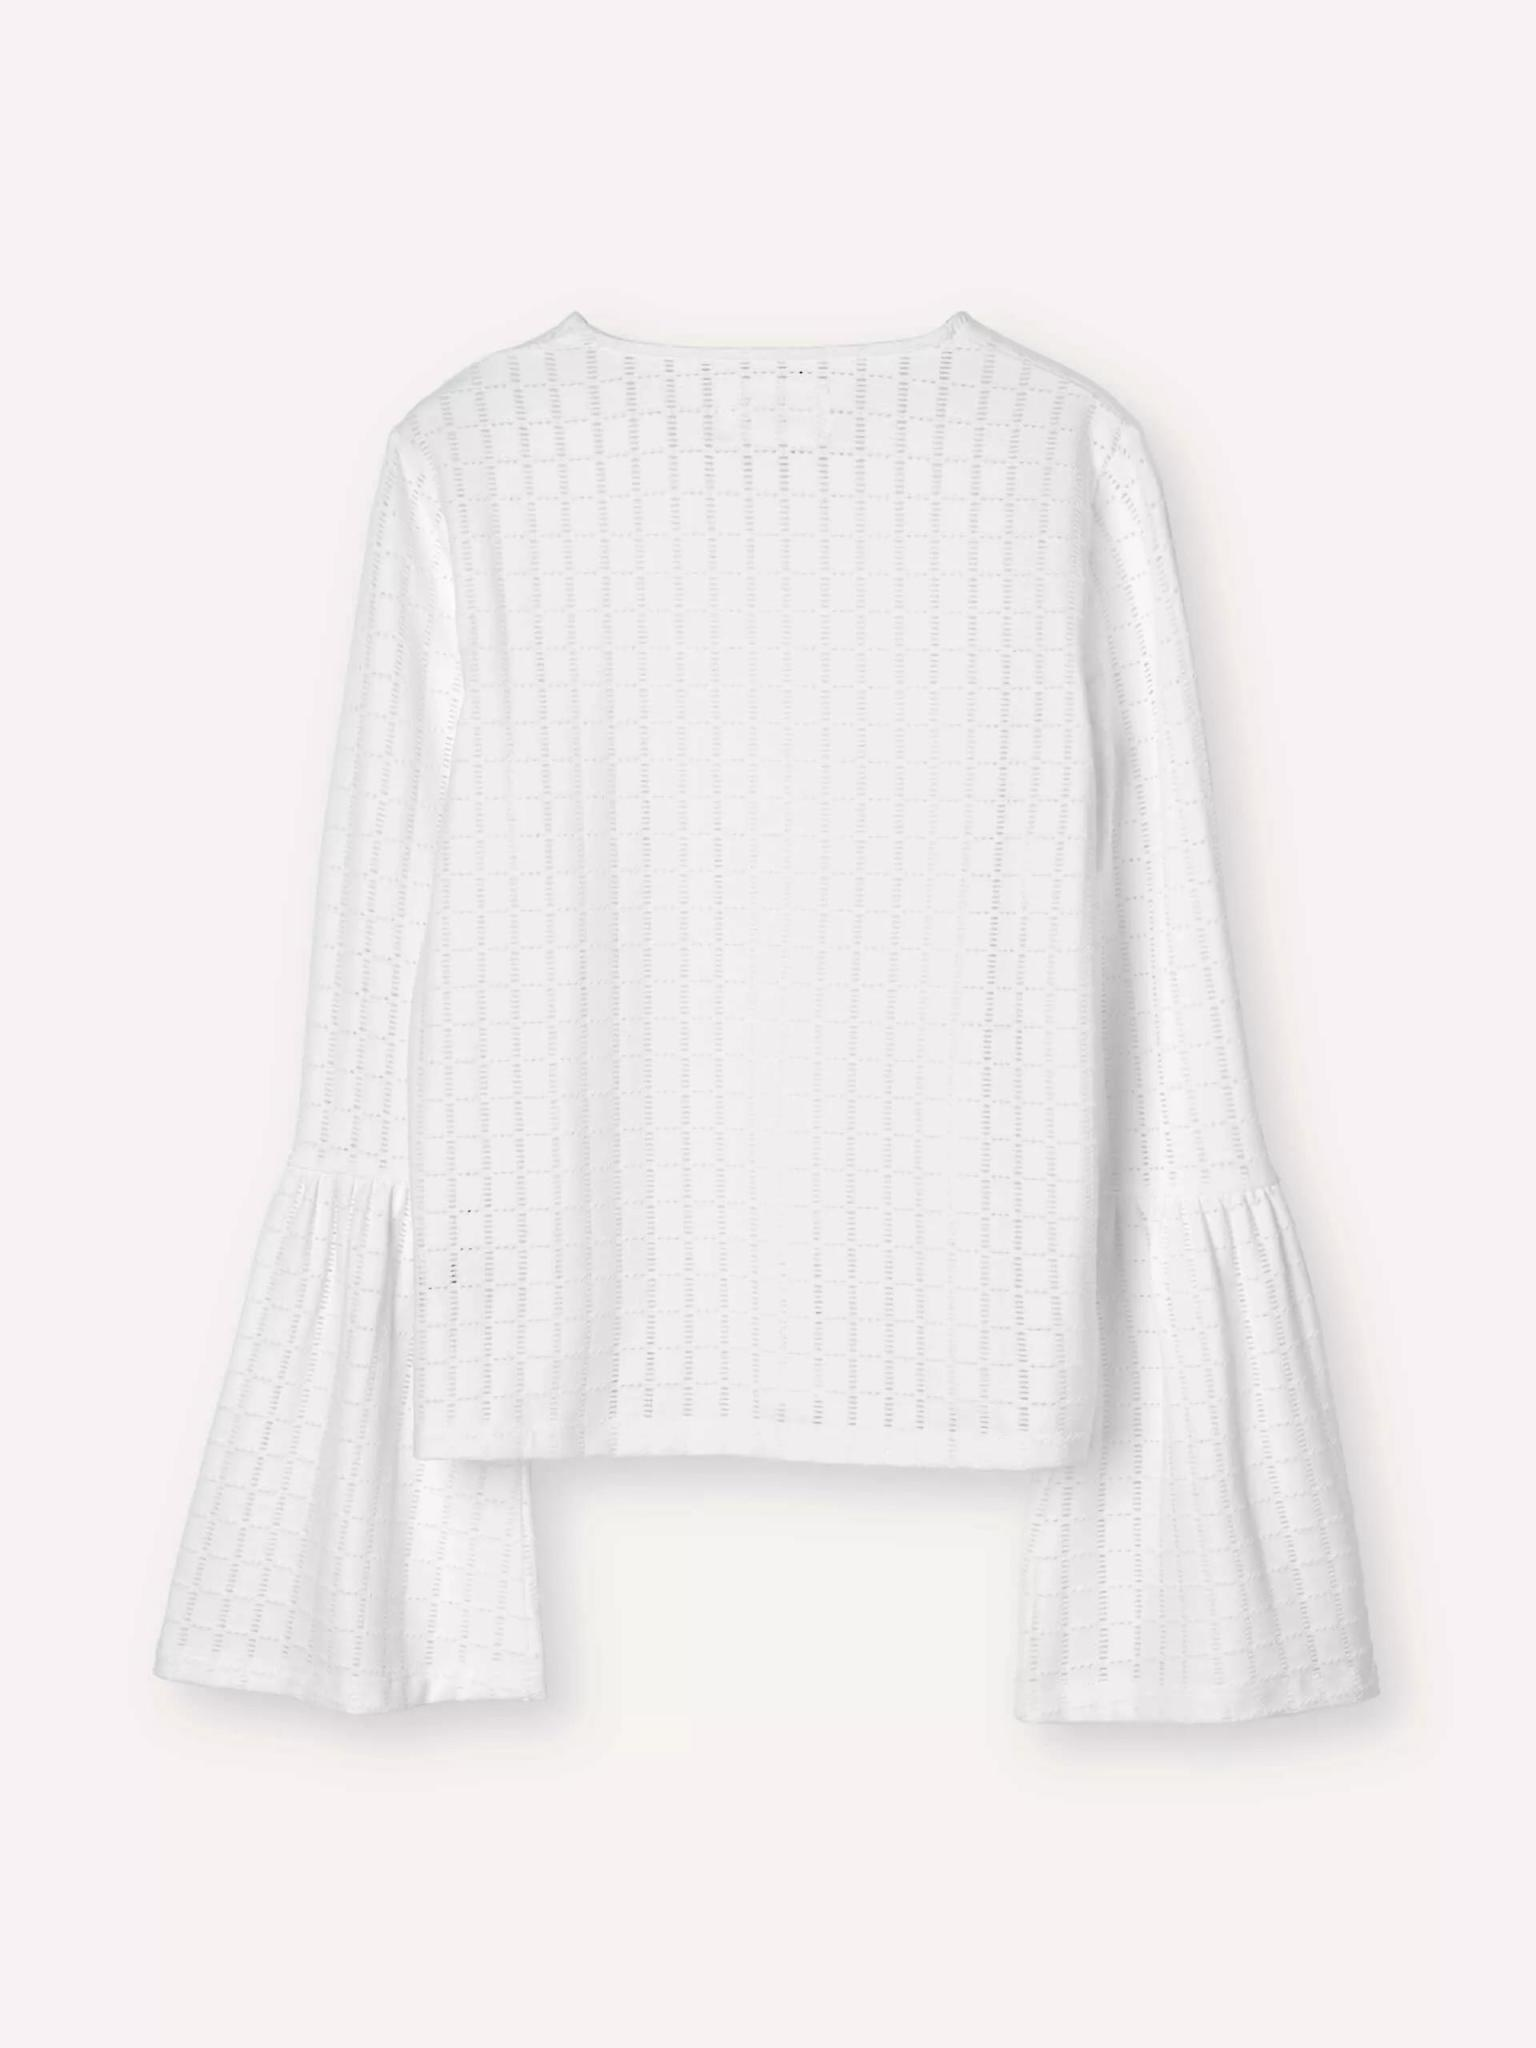 Radar Embroidery Top Off White-6